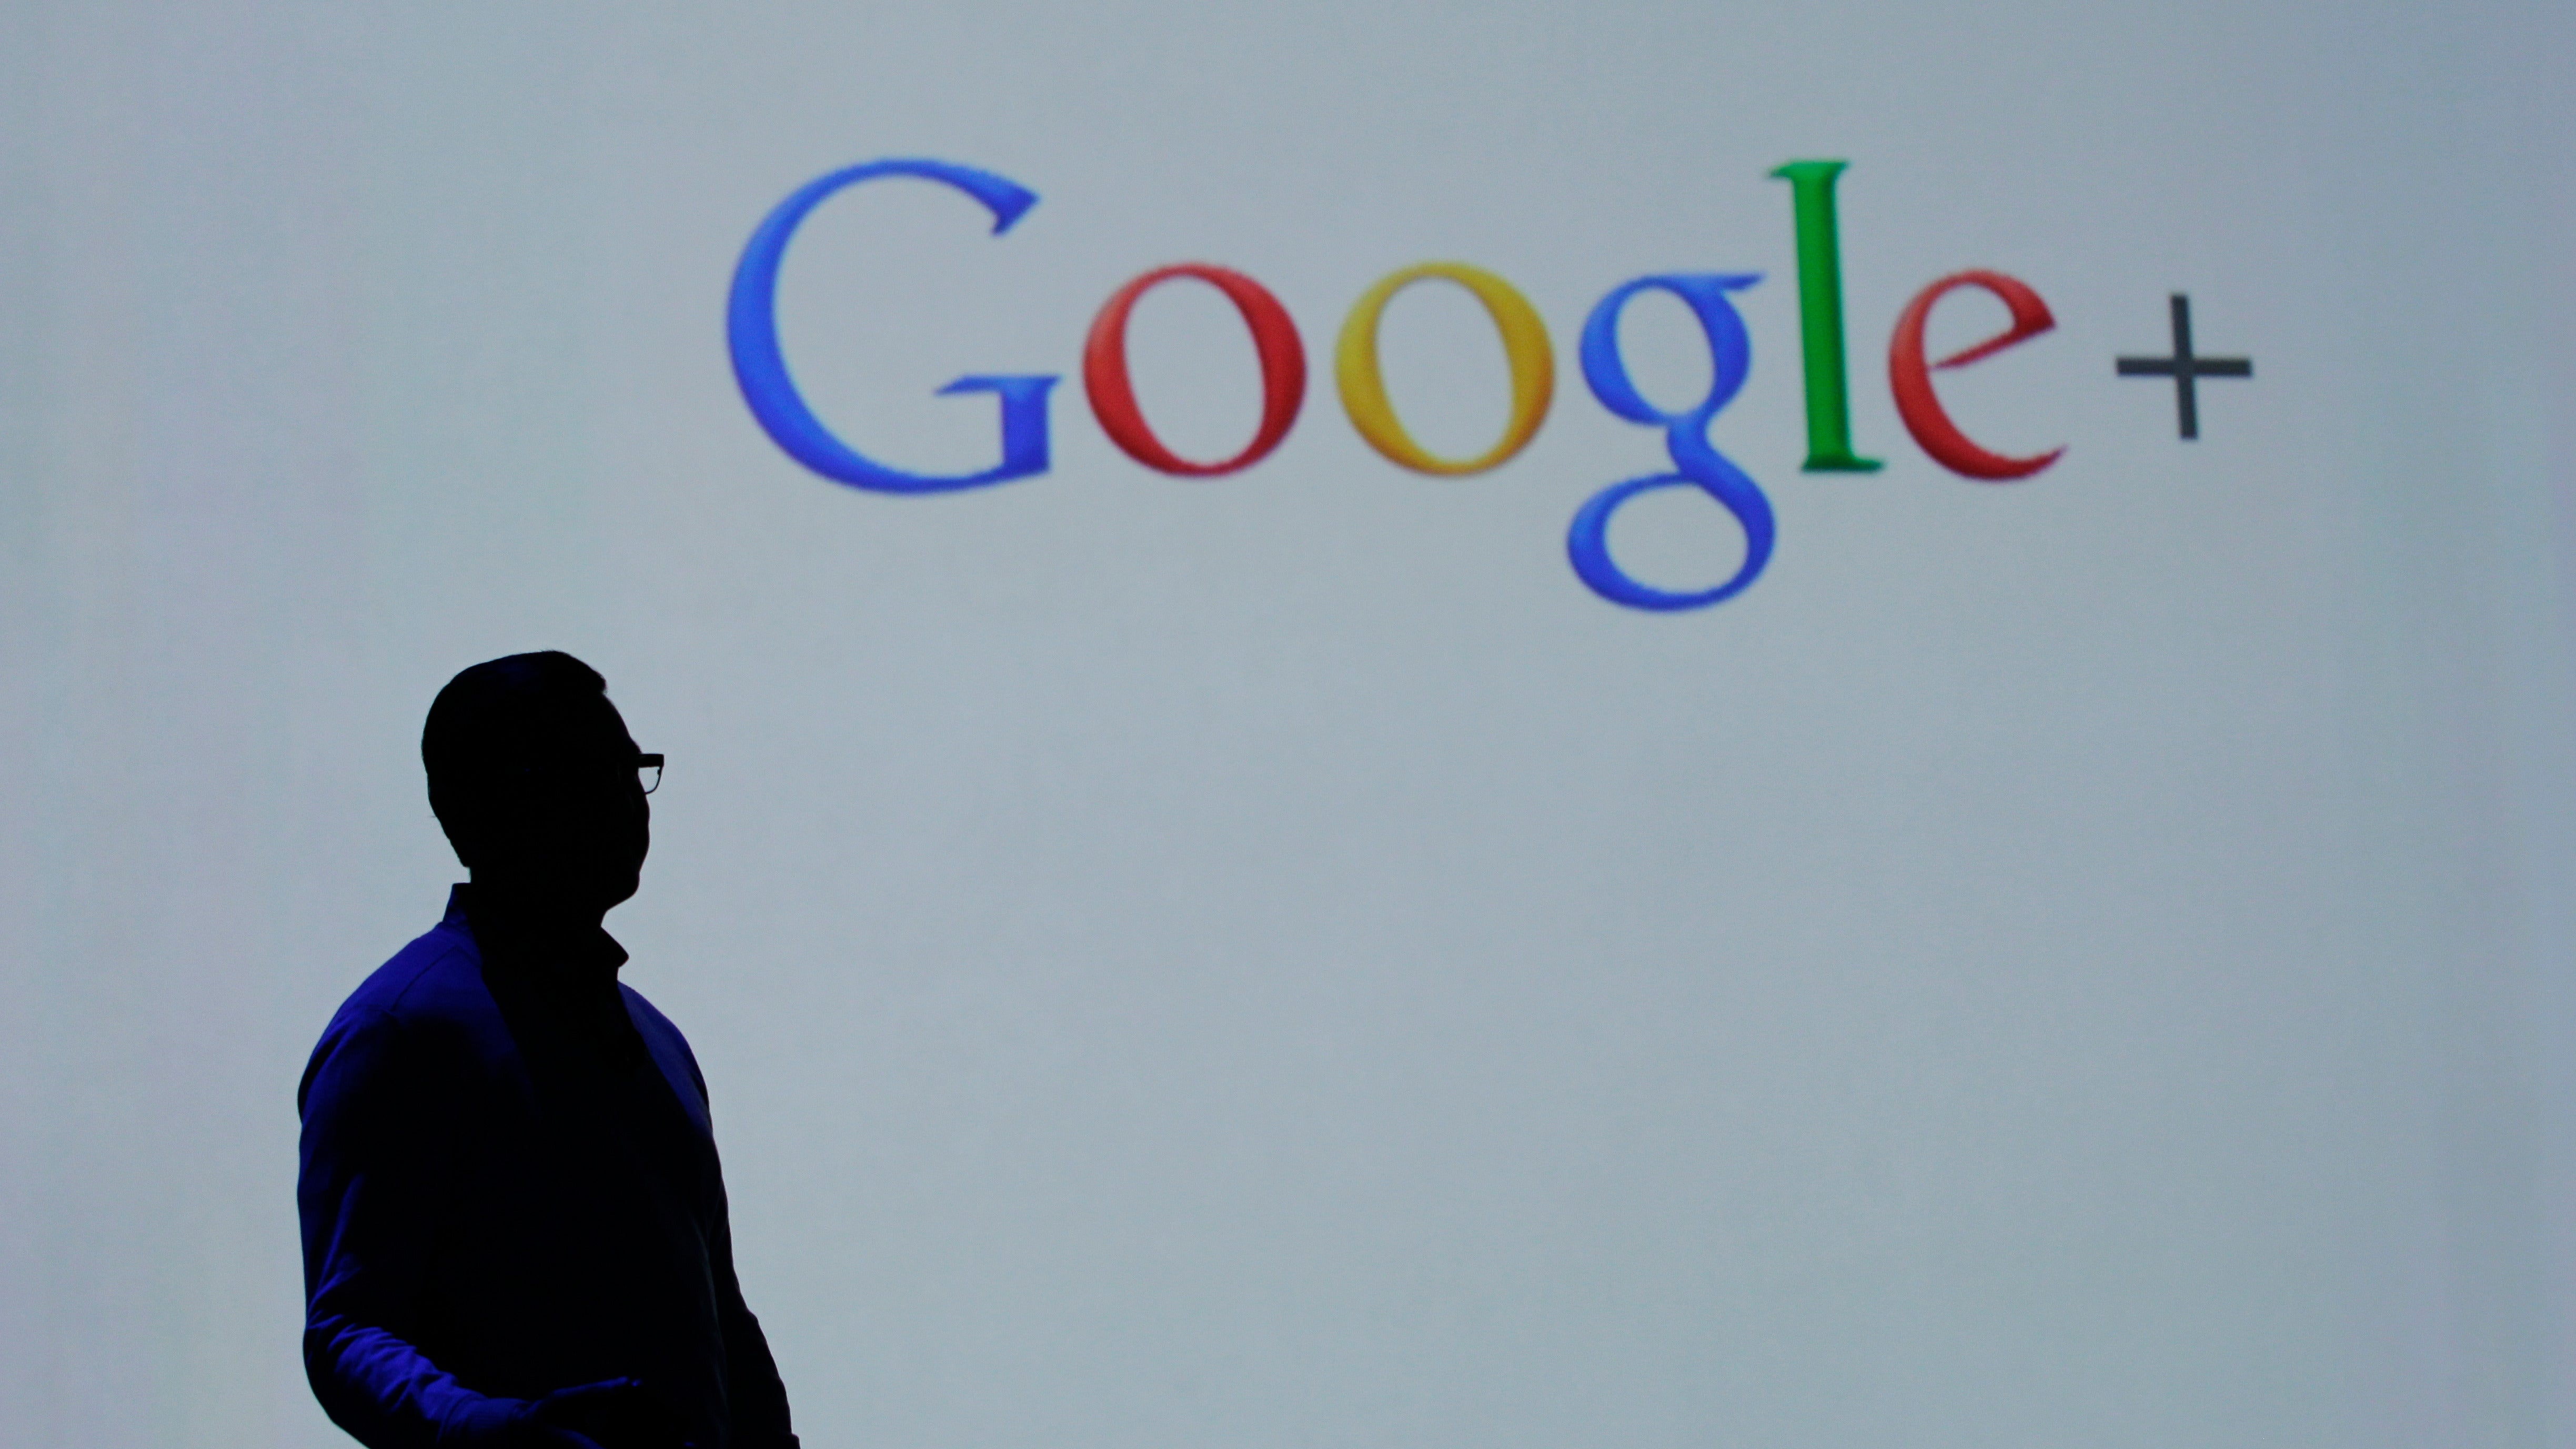 Senators Join Call To Investigate Google Over Apps Sharing Kids' Private Info